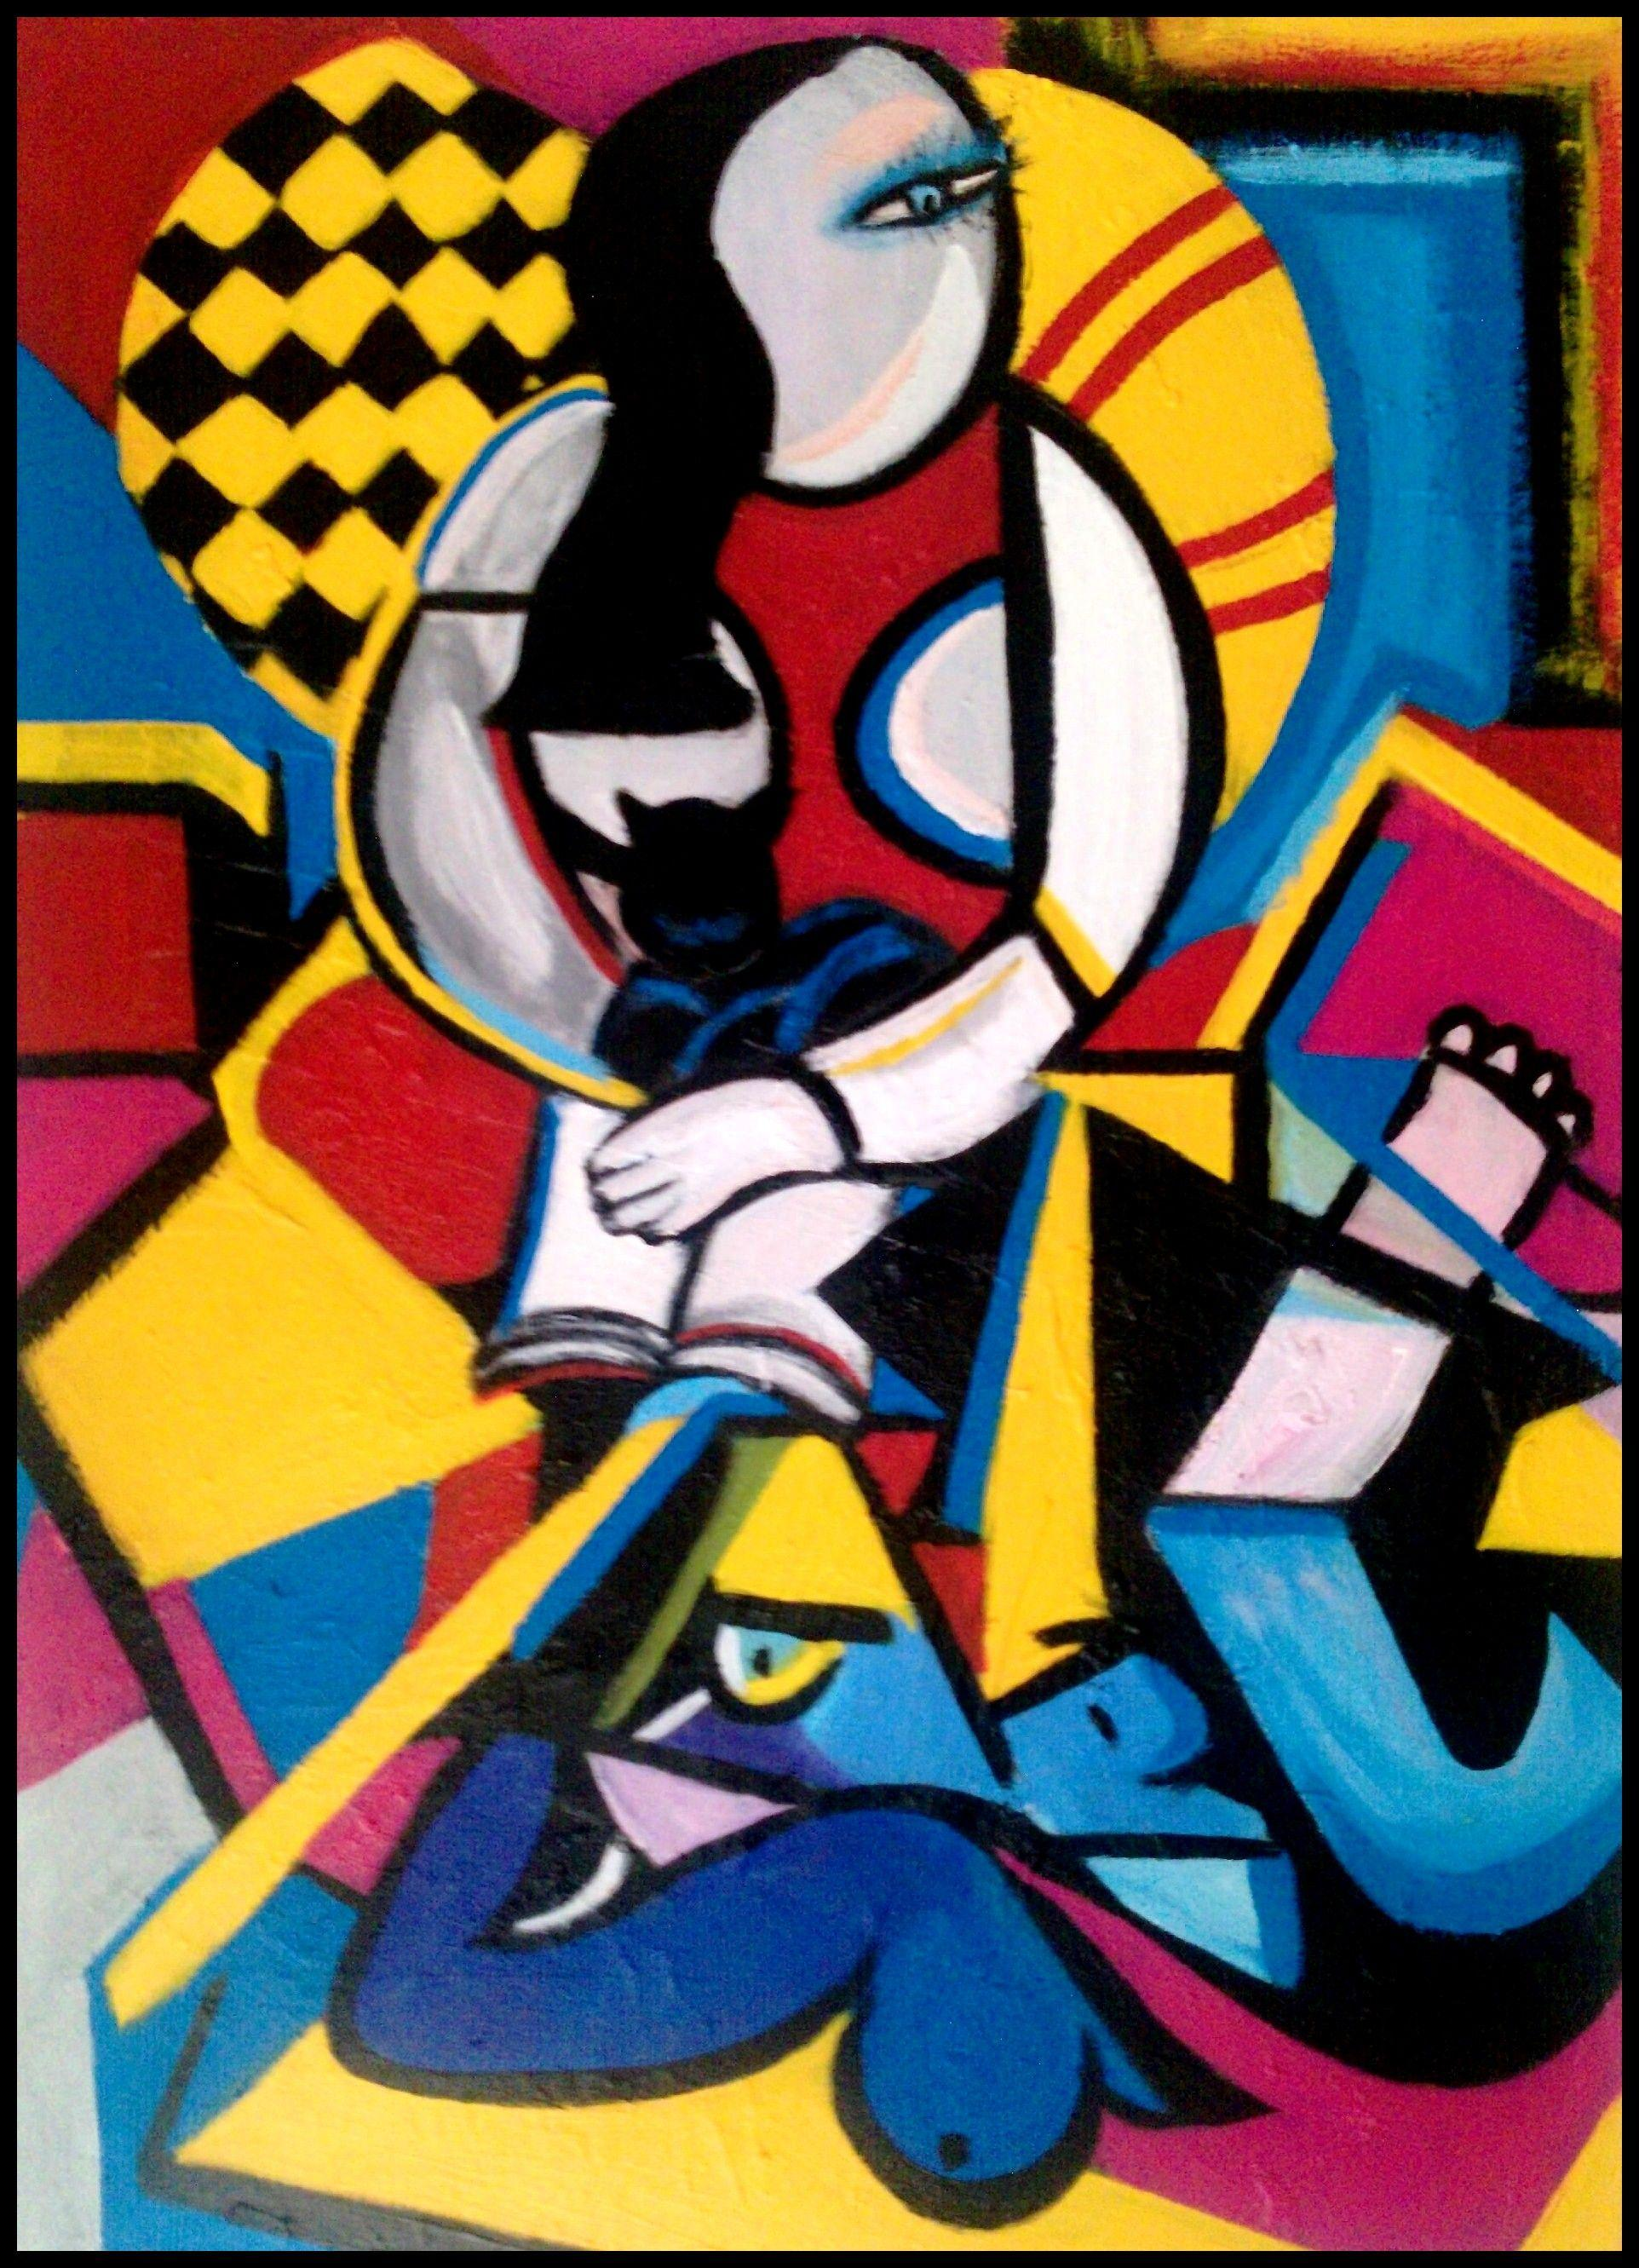 Abstract Art By Pablo Picasso - wallpaper.